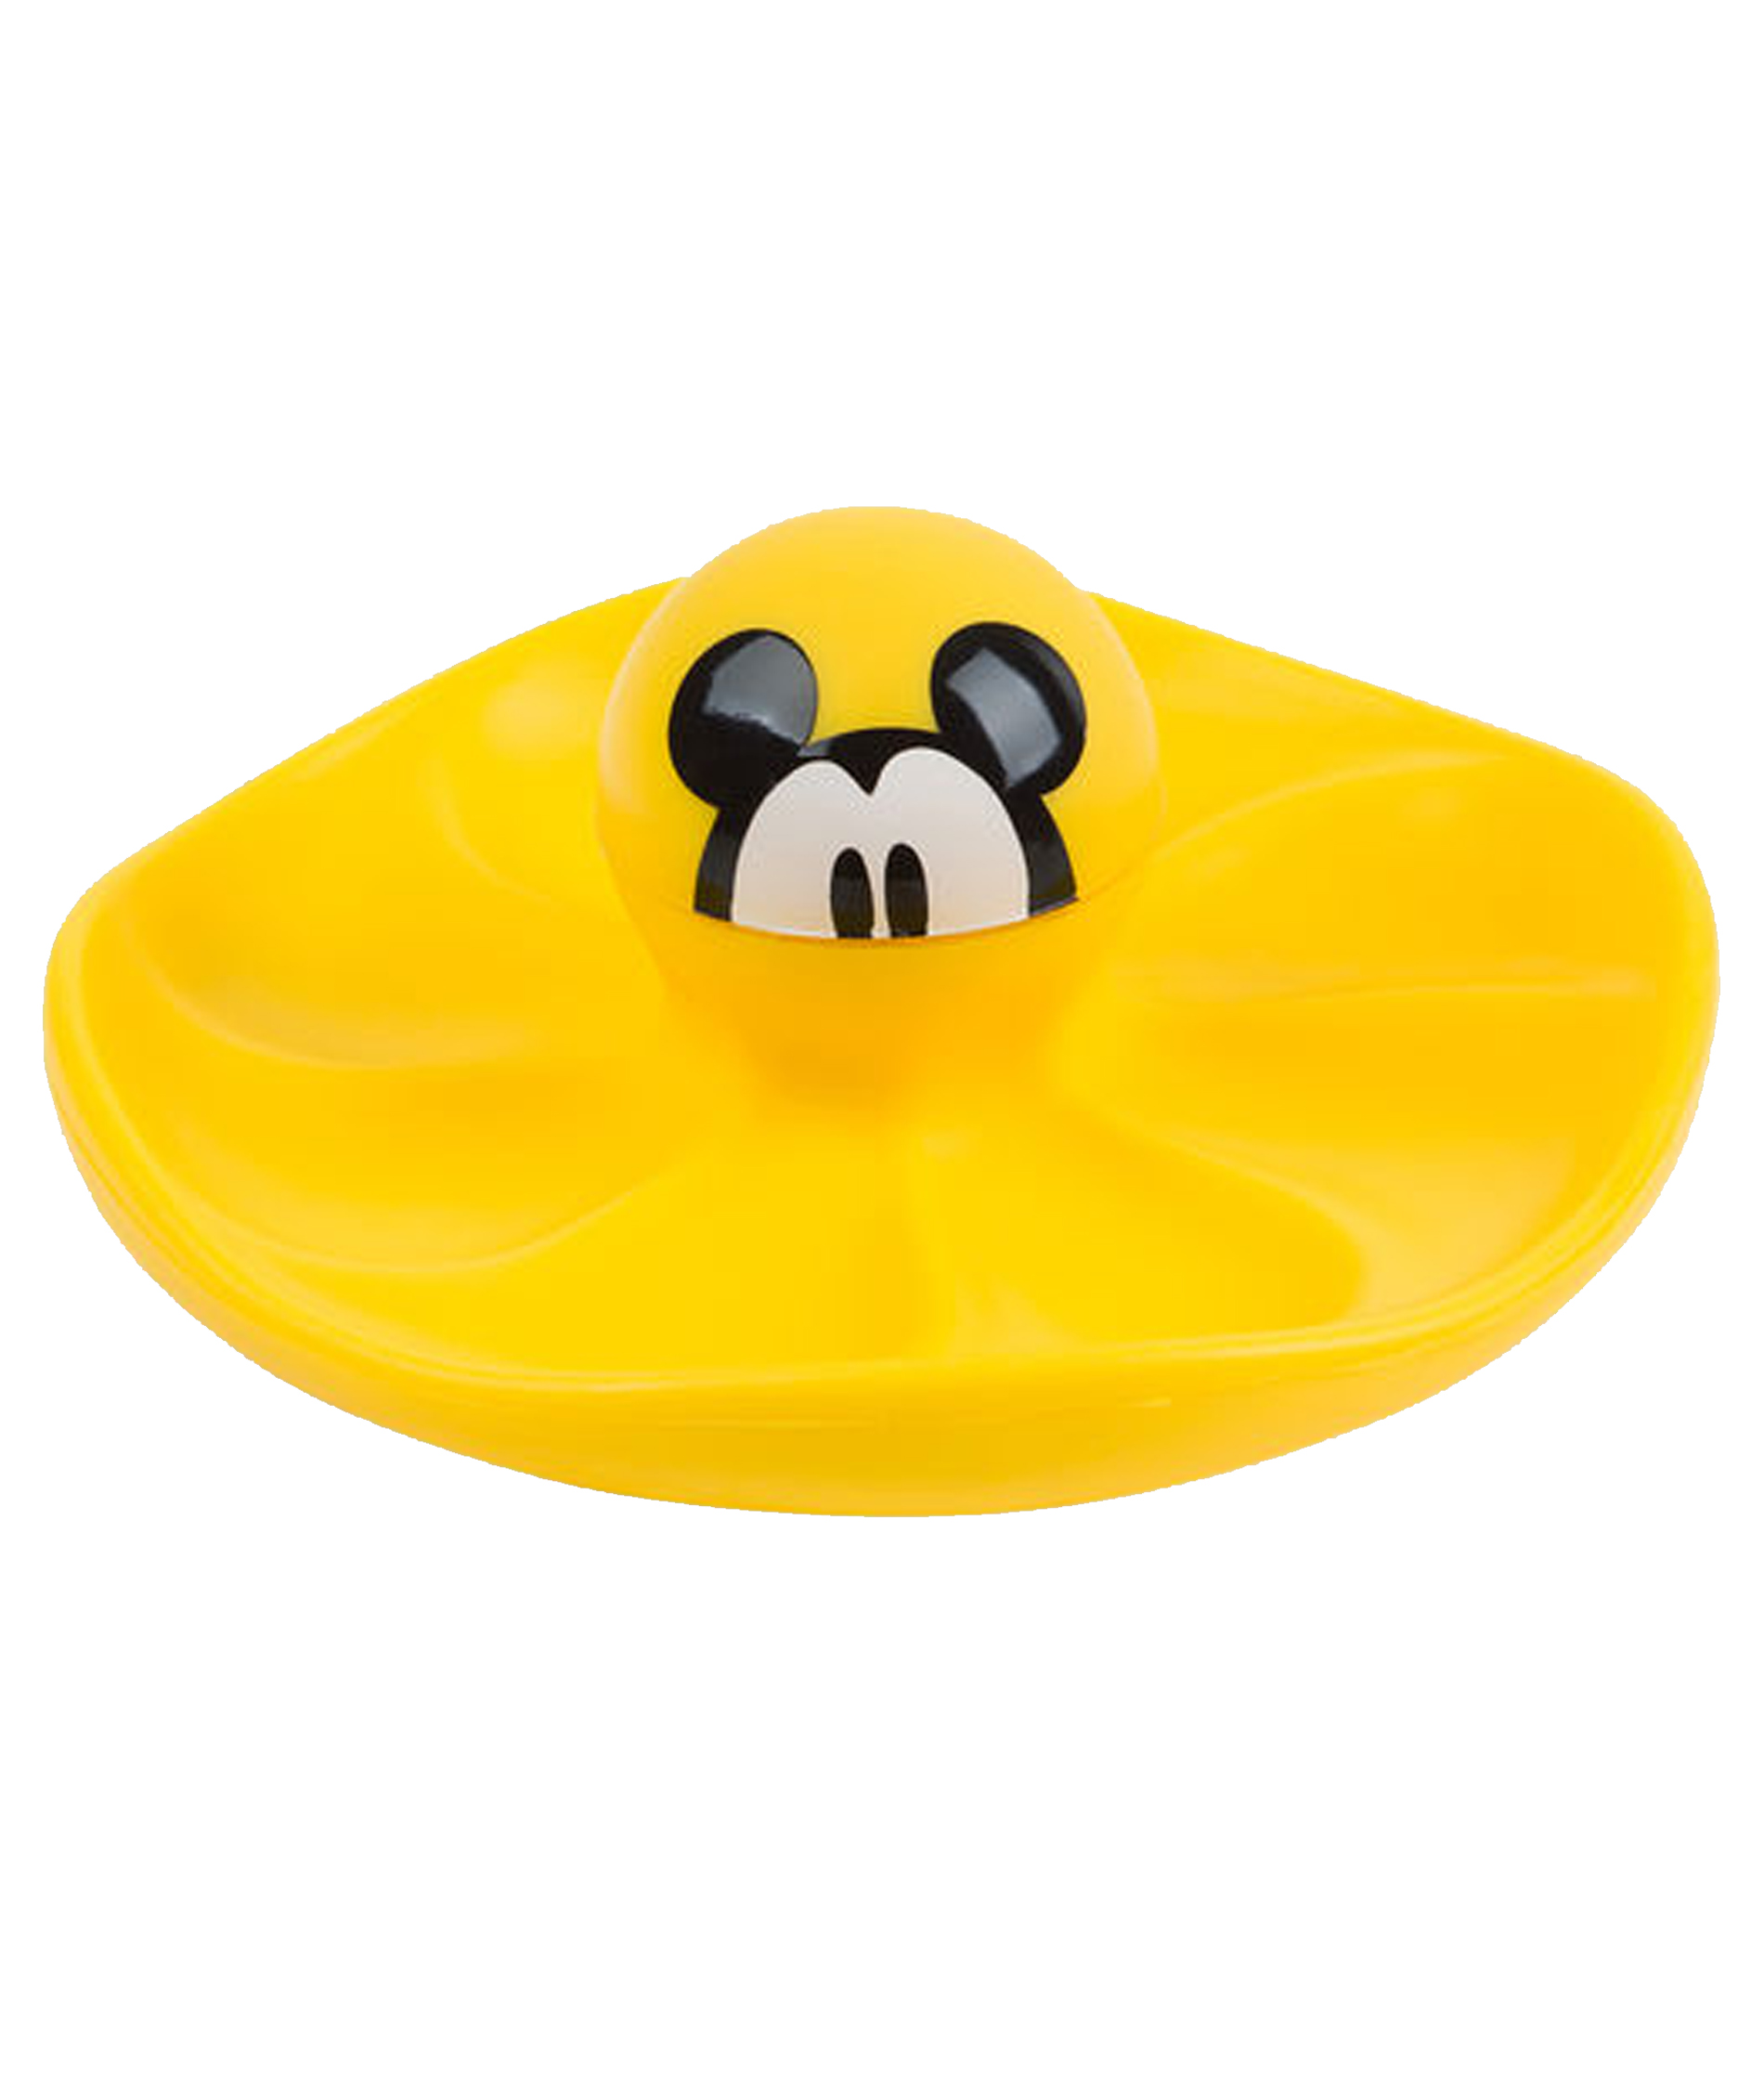 Speedo Disney Mickey Mouse Slow Sinkers Toy